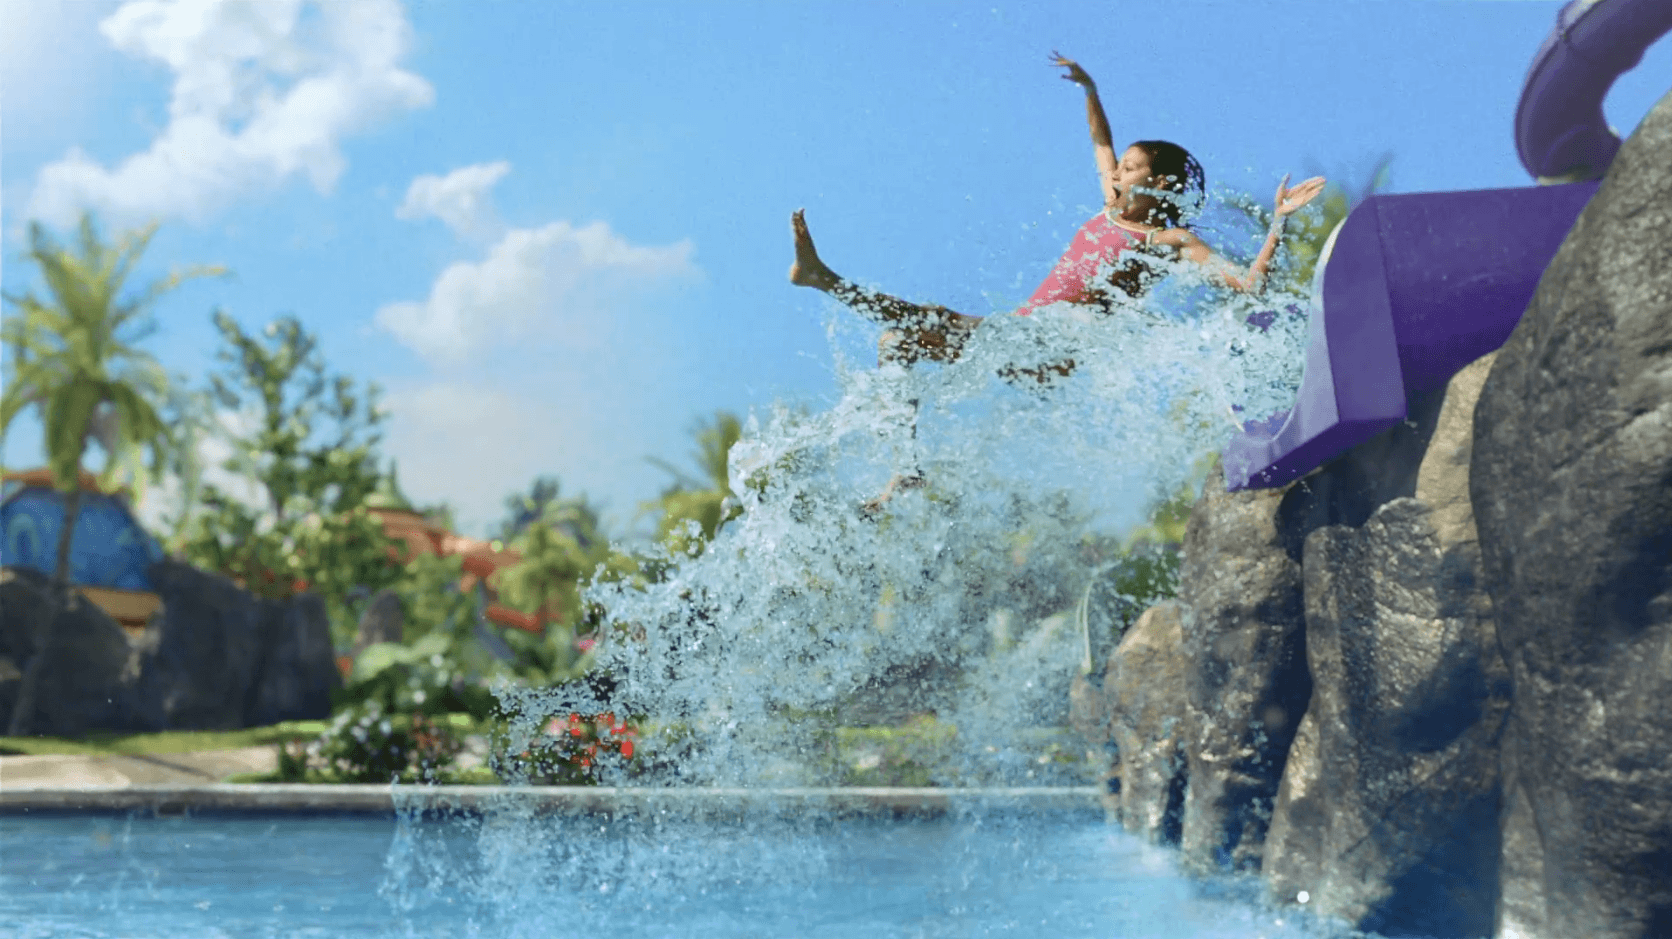 Volcano Bay: What to do first?